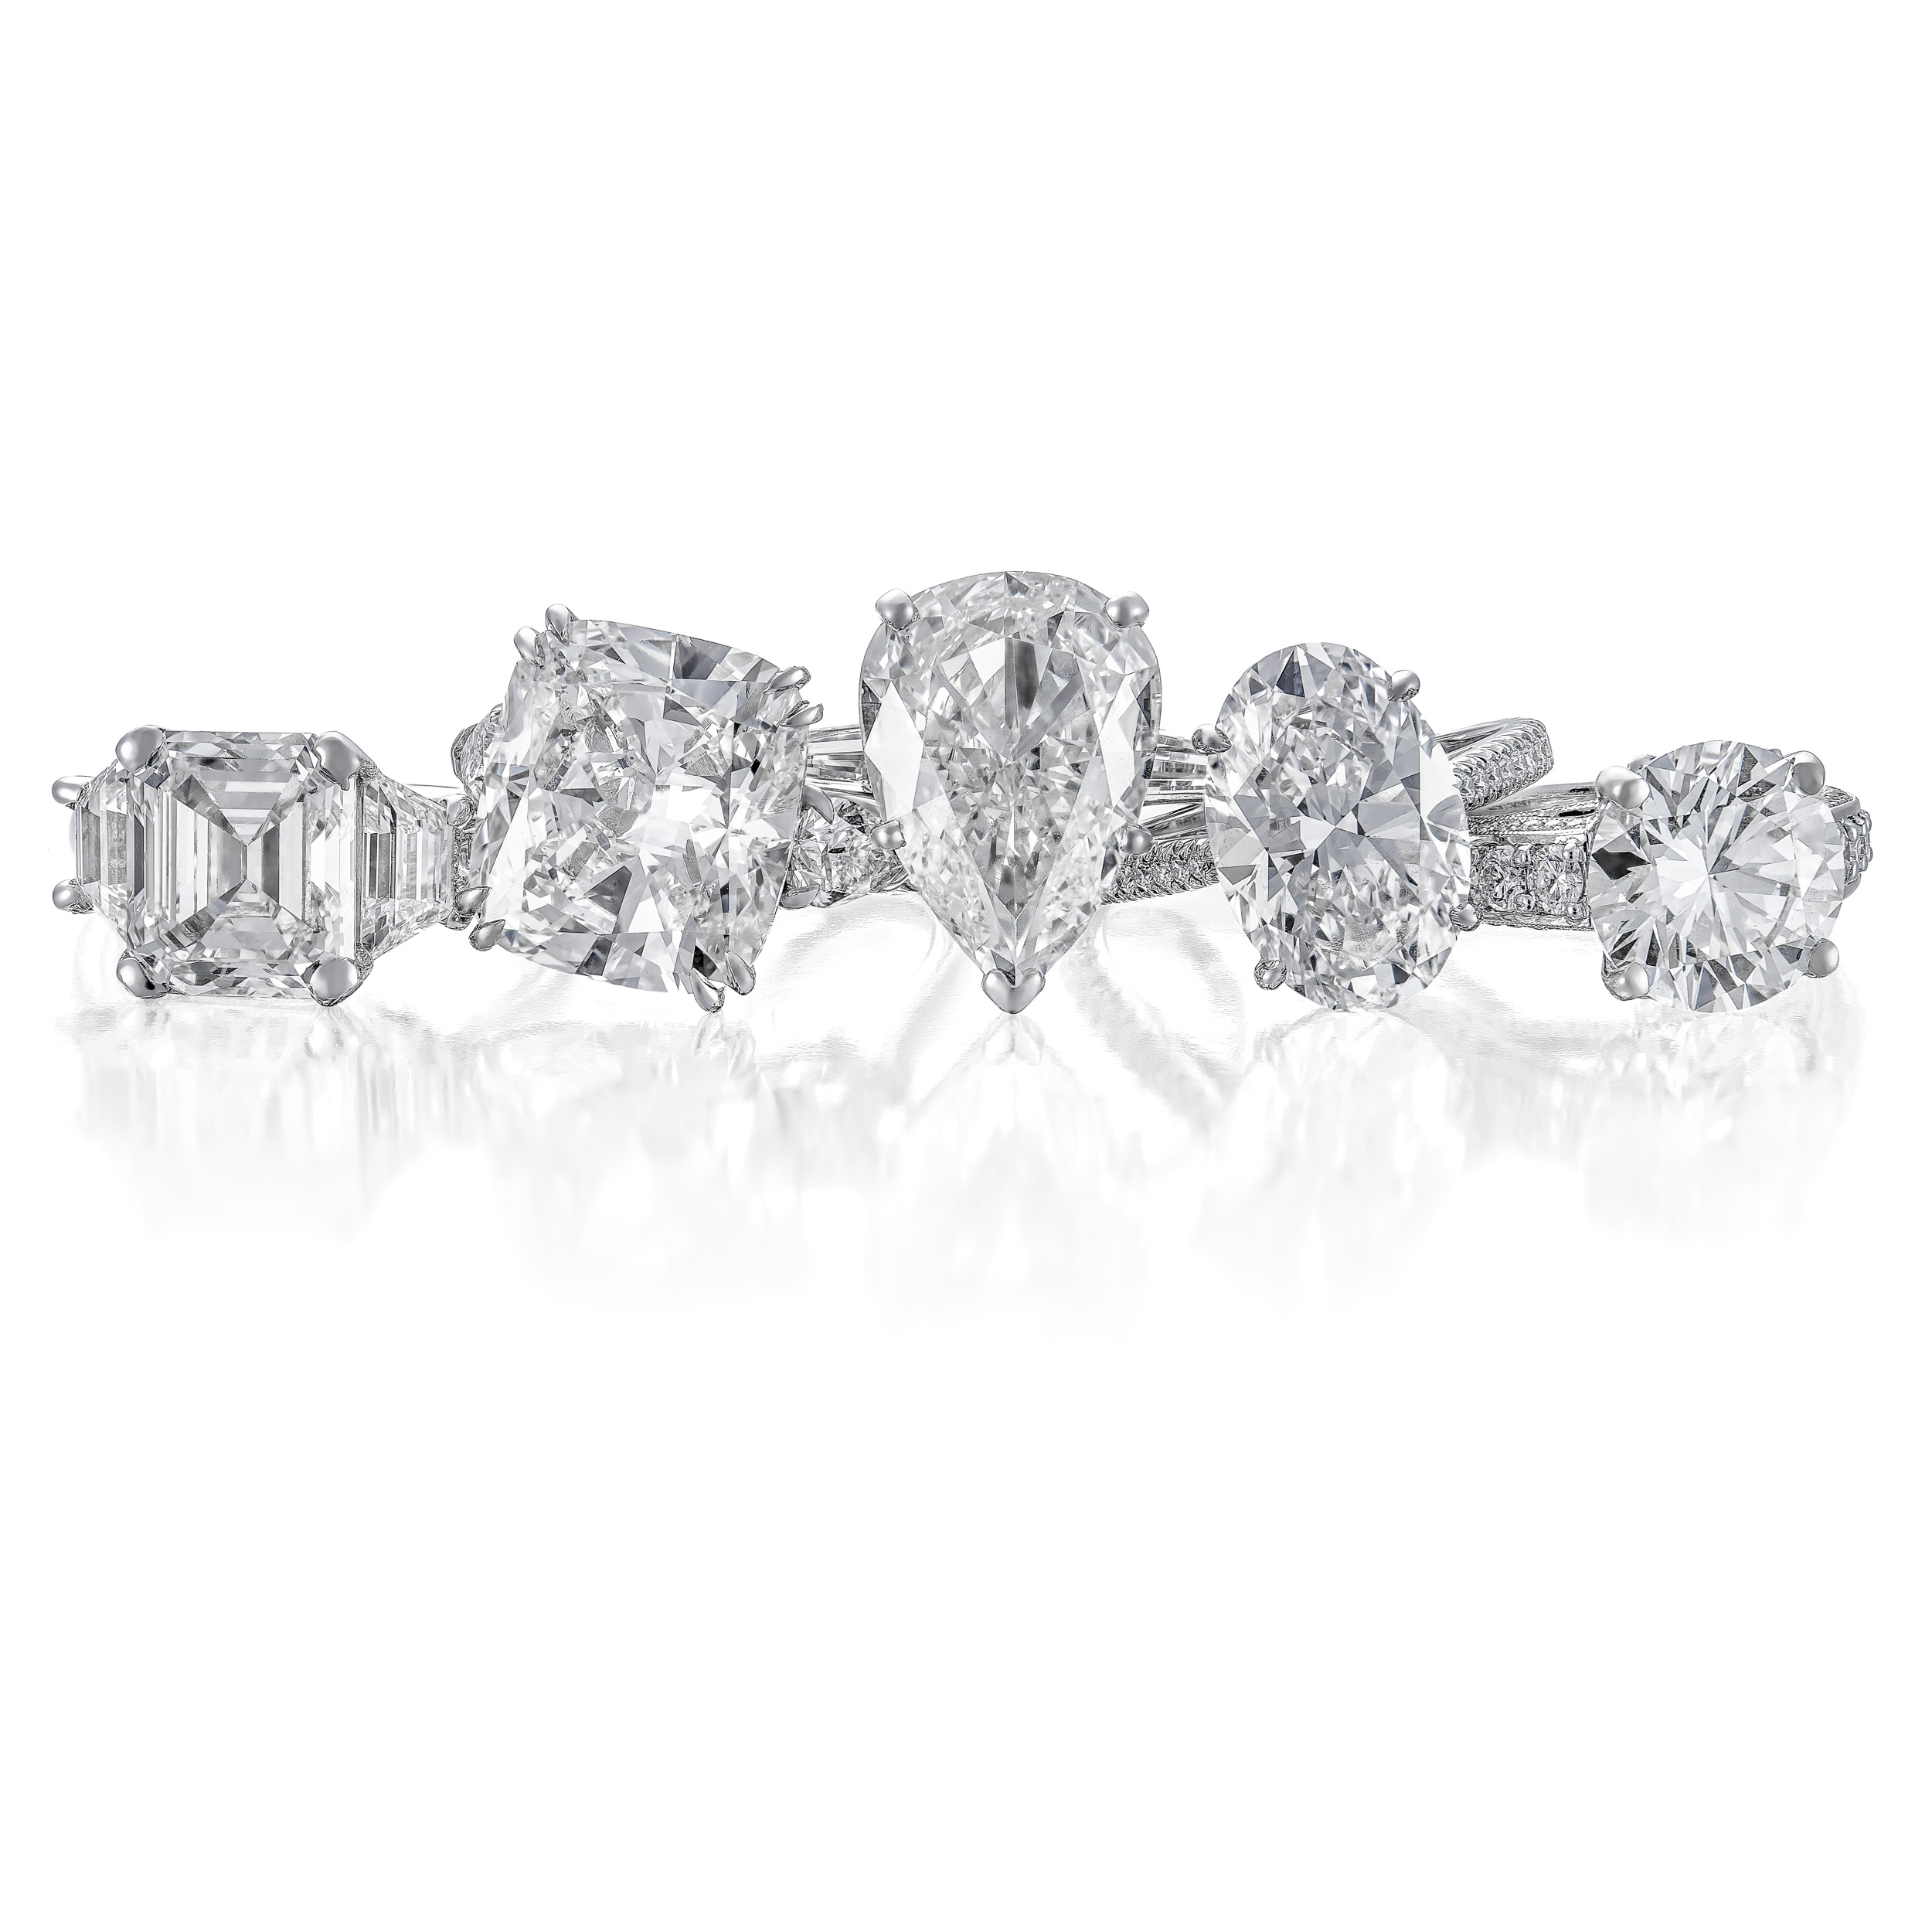 Diamond_Ring_Stack_Miami_Fort Lauderdale _Commercial_Jewelry Photographer_Franklin_Castillo_FEC_Photo-2.jpg